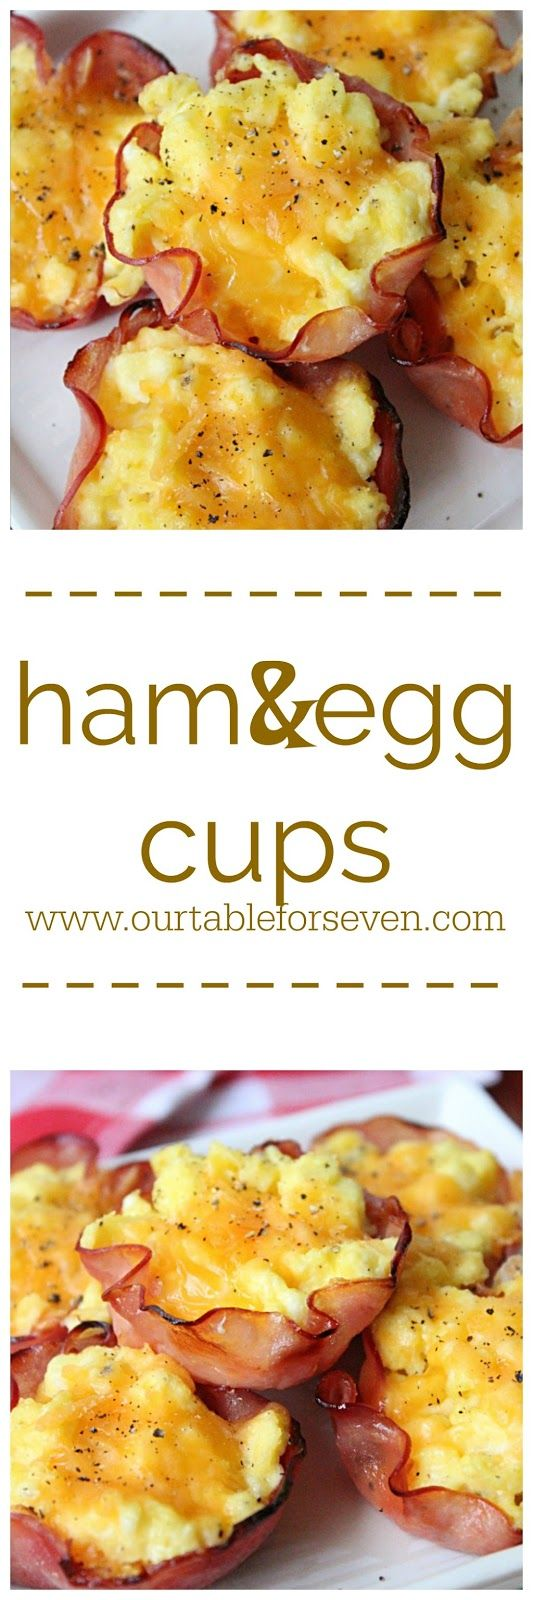 Ham and Eggs Cups from Table for Seven